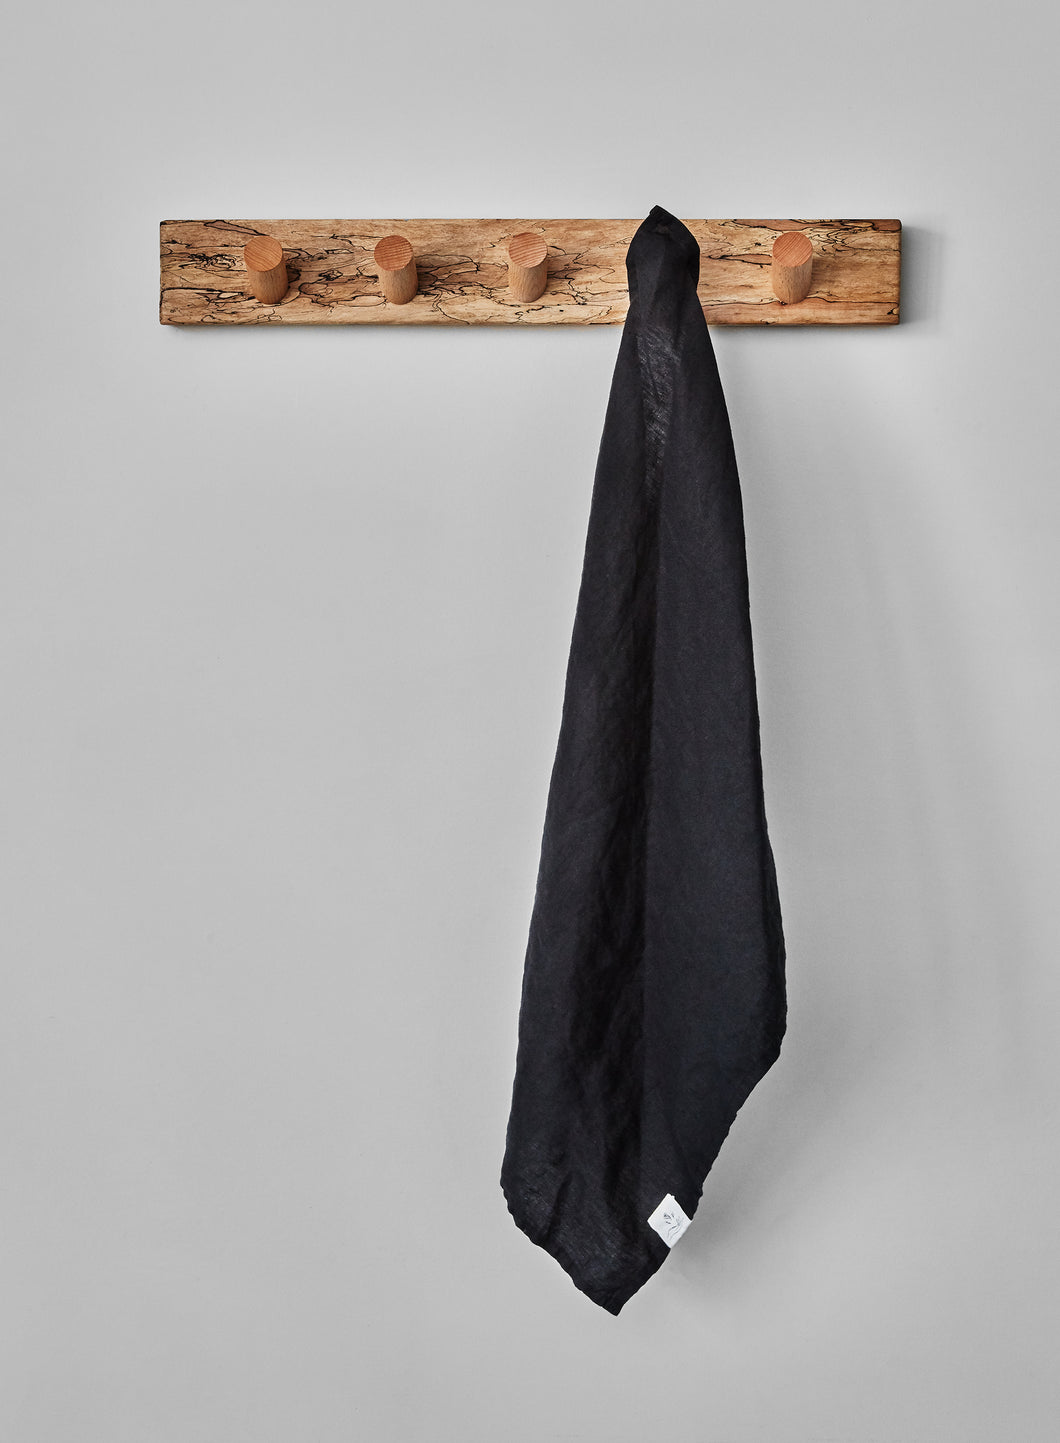 Black linen tea towel